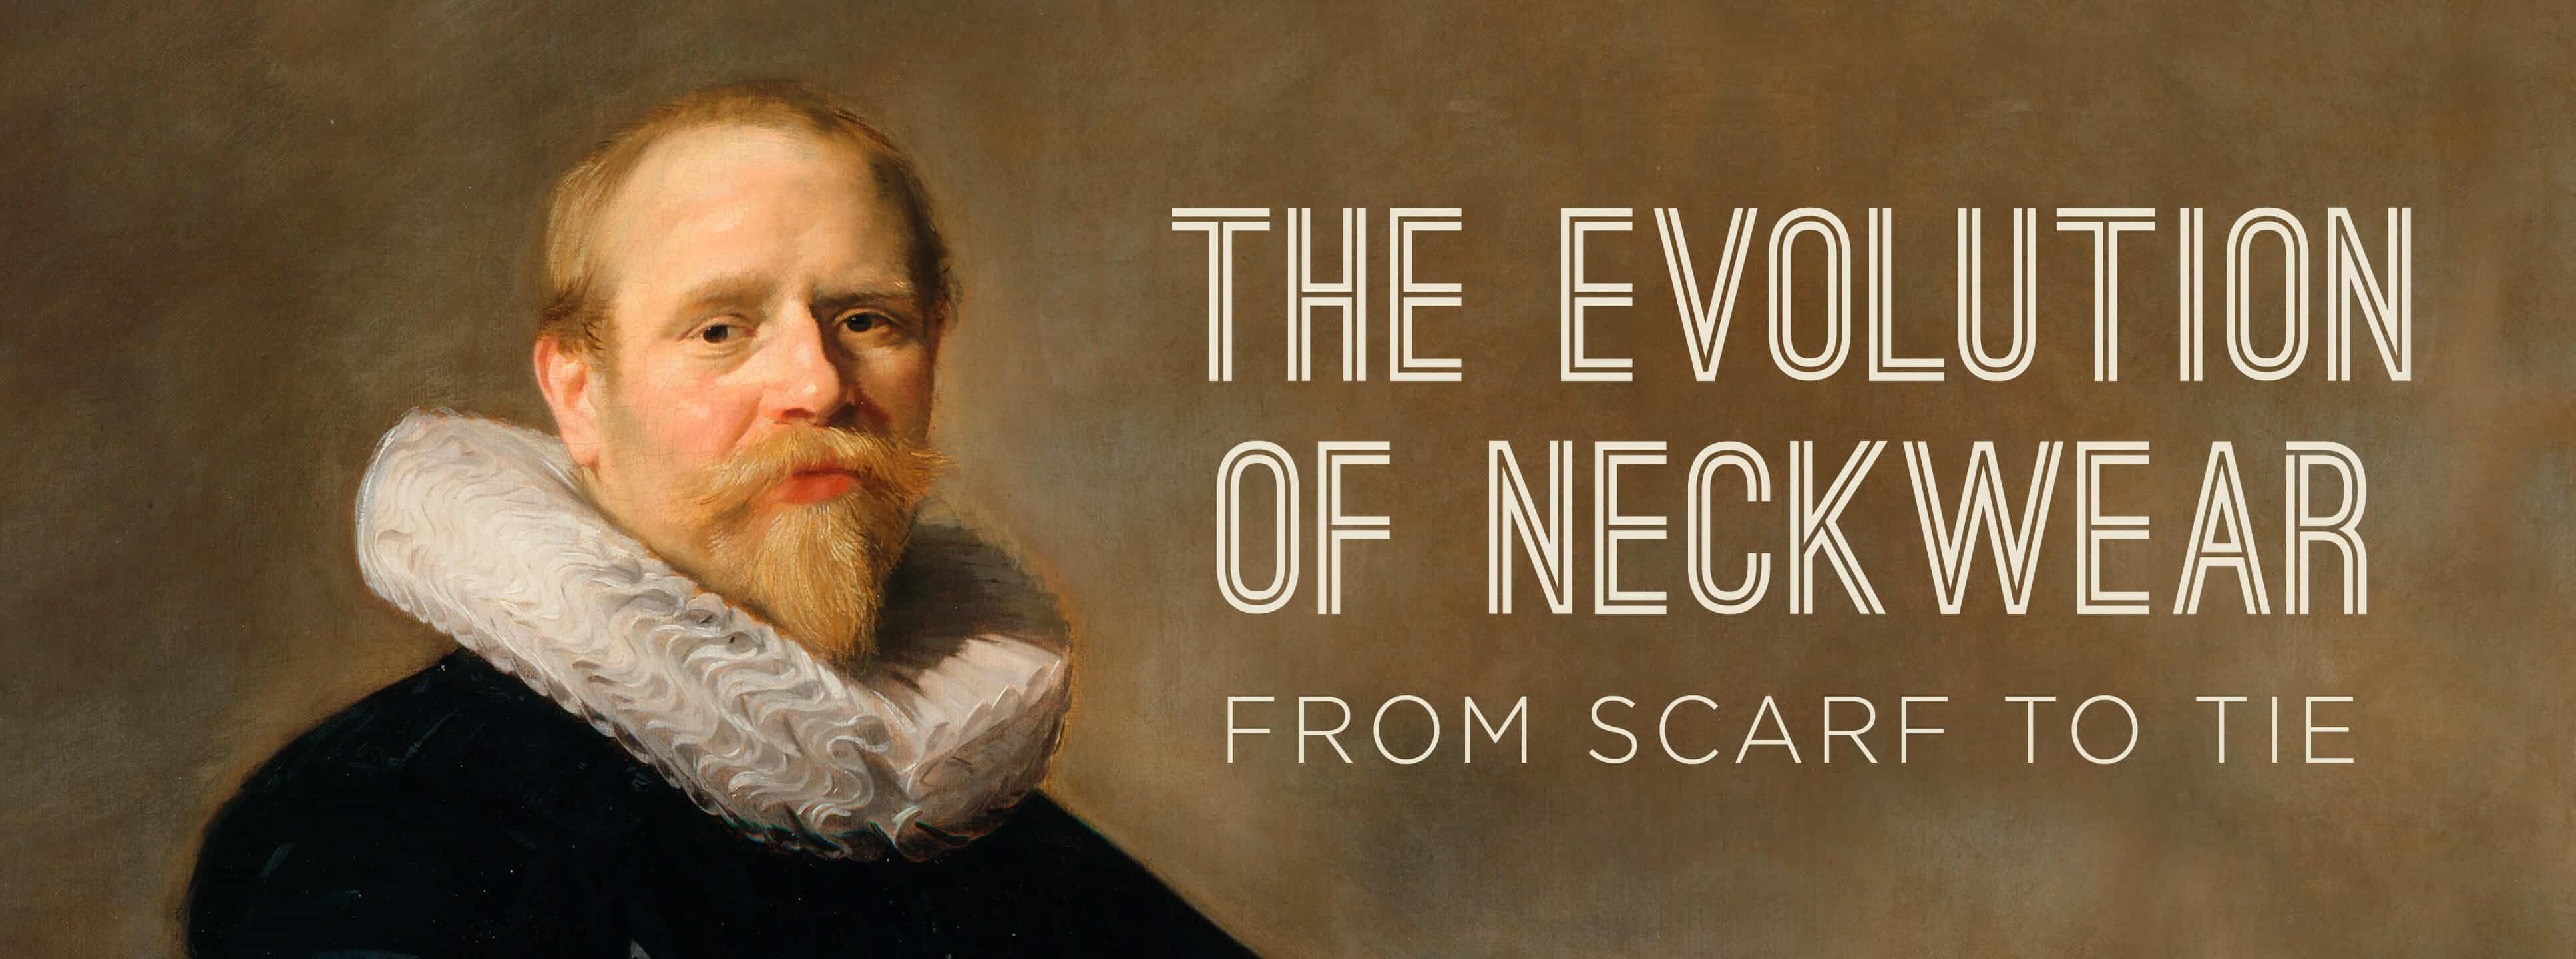 72de4663f41a The Evolution of Neckwear – From Scarf To Tie & Why We Wear Ties Today